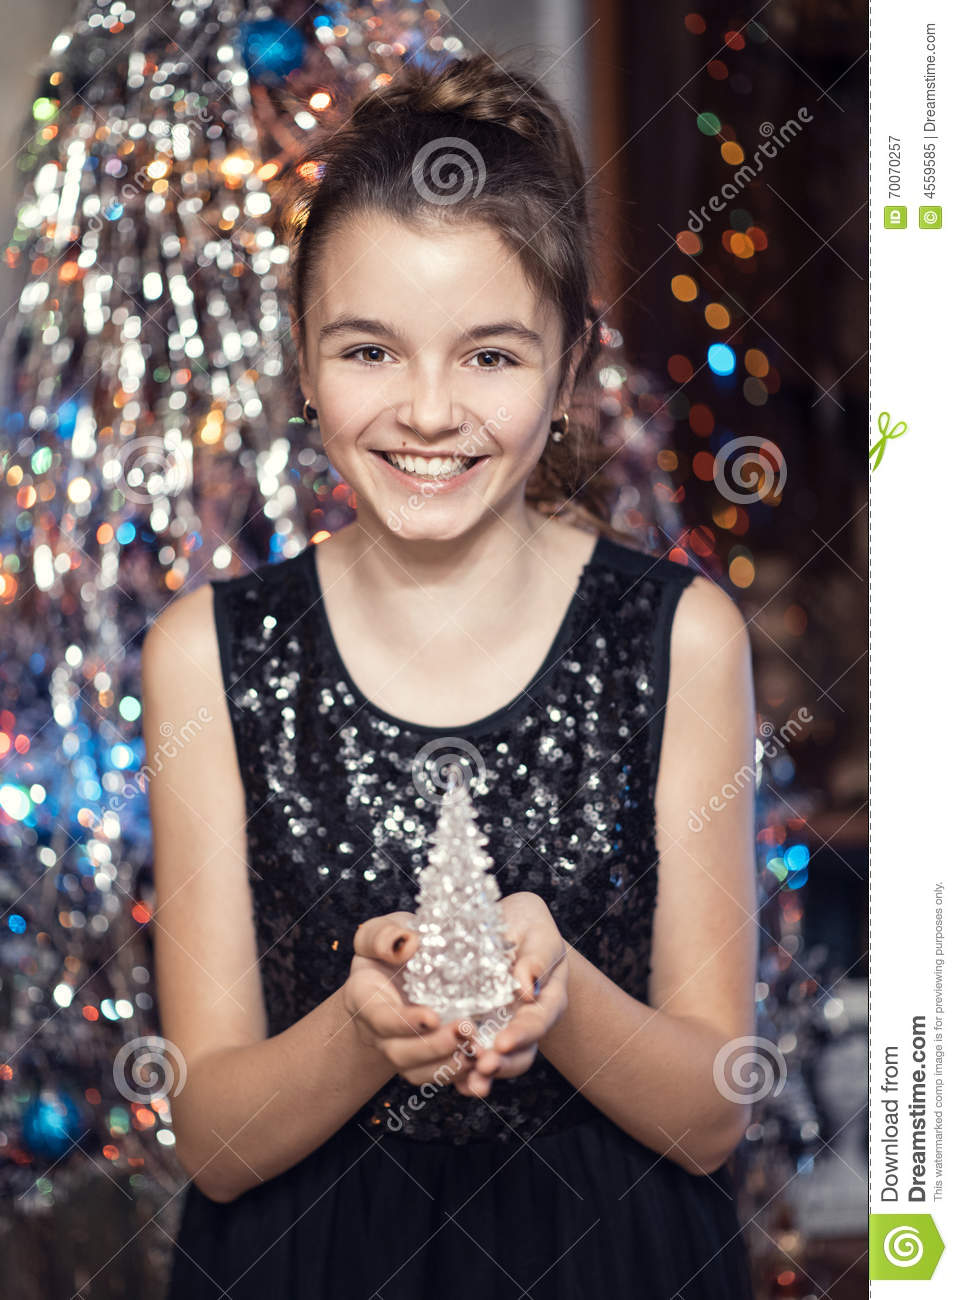 Young Beautiful Girl Smiling And Holding A Christmas Tree